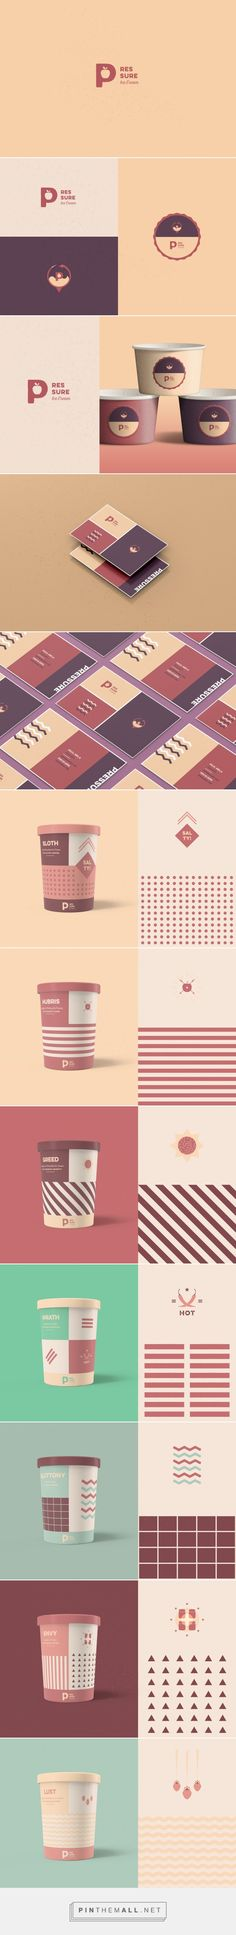 Pressure Ice Cream (Concept) - Packaging of the World - Creative Package Design Gallery - http://www.packagingoftheworld.com/2016/10/pressure-ice-cream-concept.html